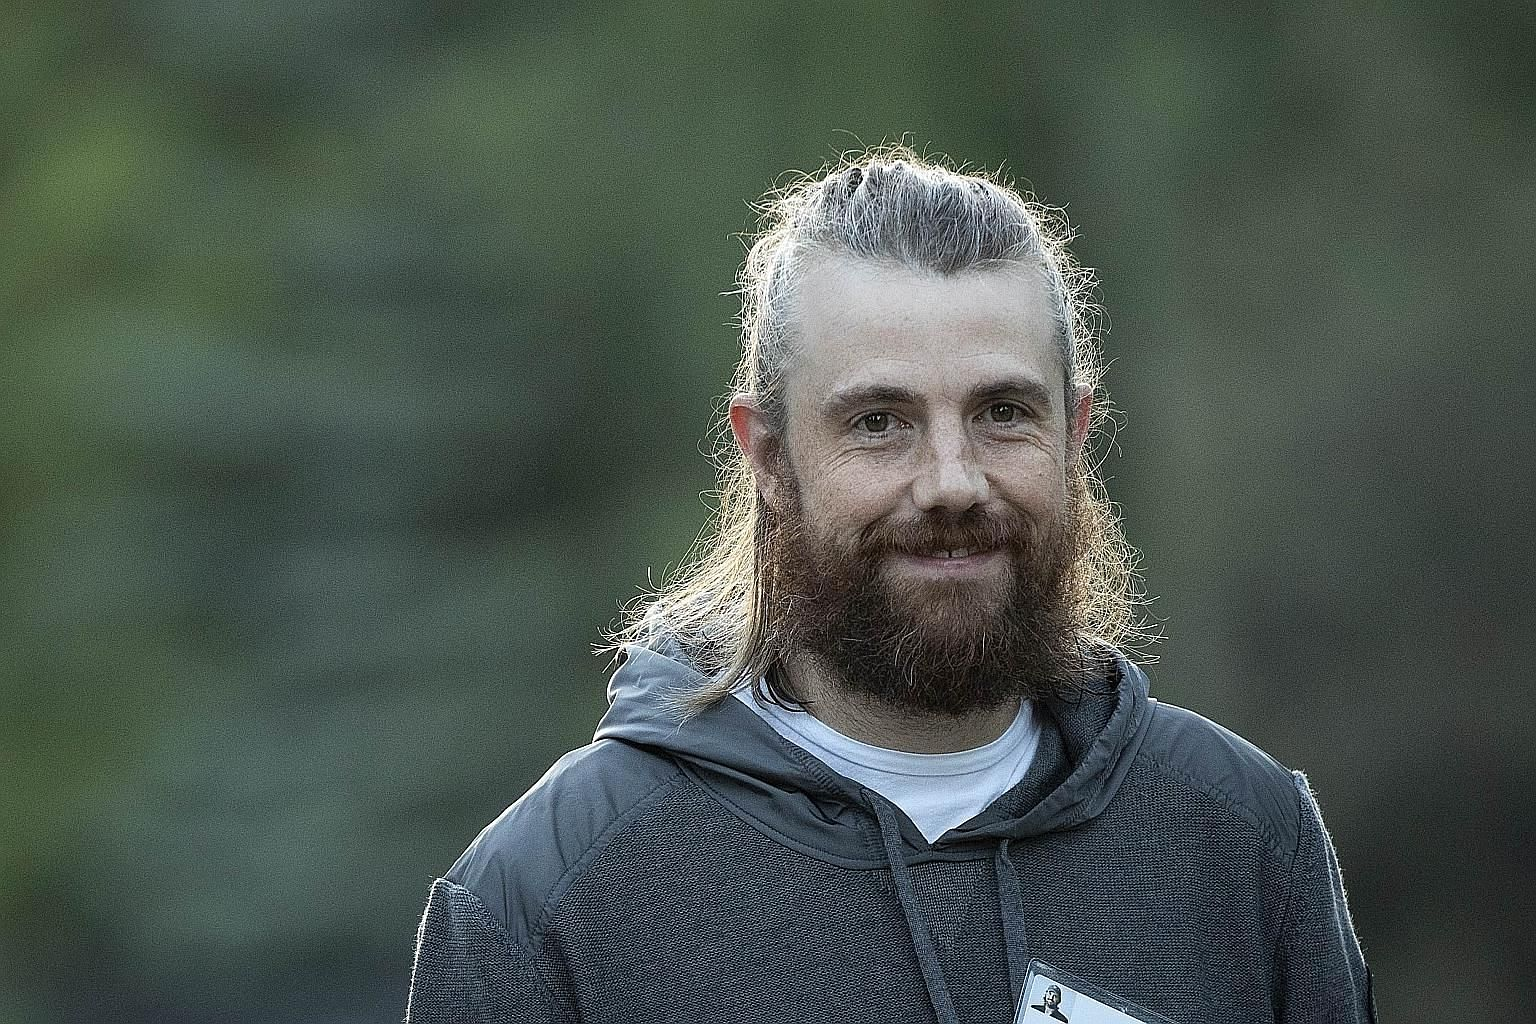 Tycoon Mike Cannon-Brookes has been a vocal advocate for renewable energy in Australia.